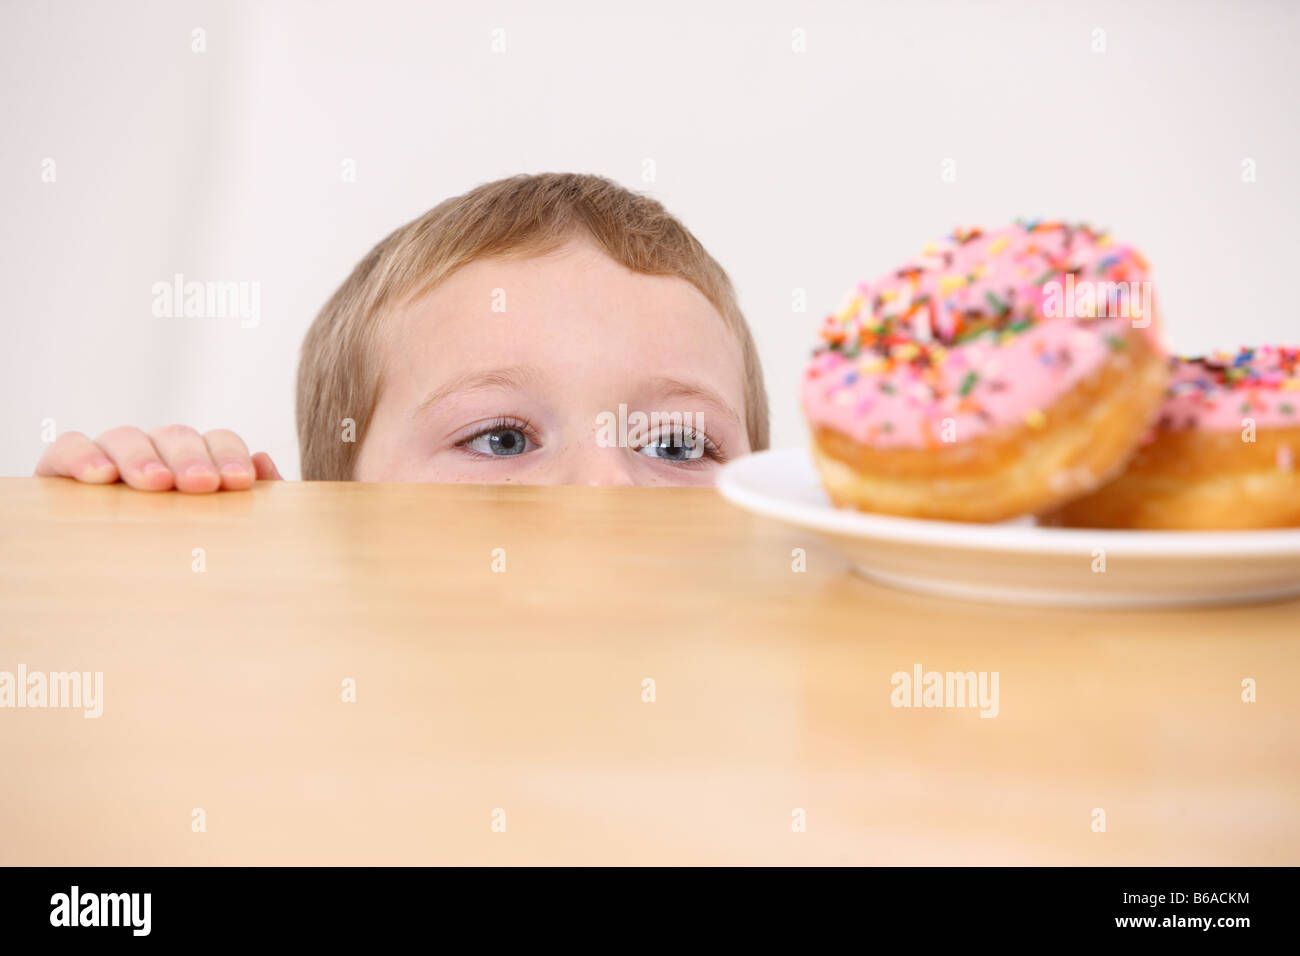 Young boy peeking over table at plate of doughnuts - Stock Image